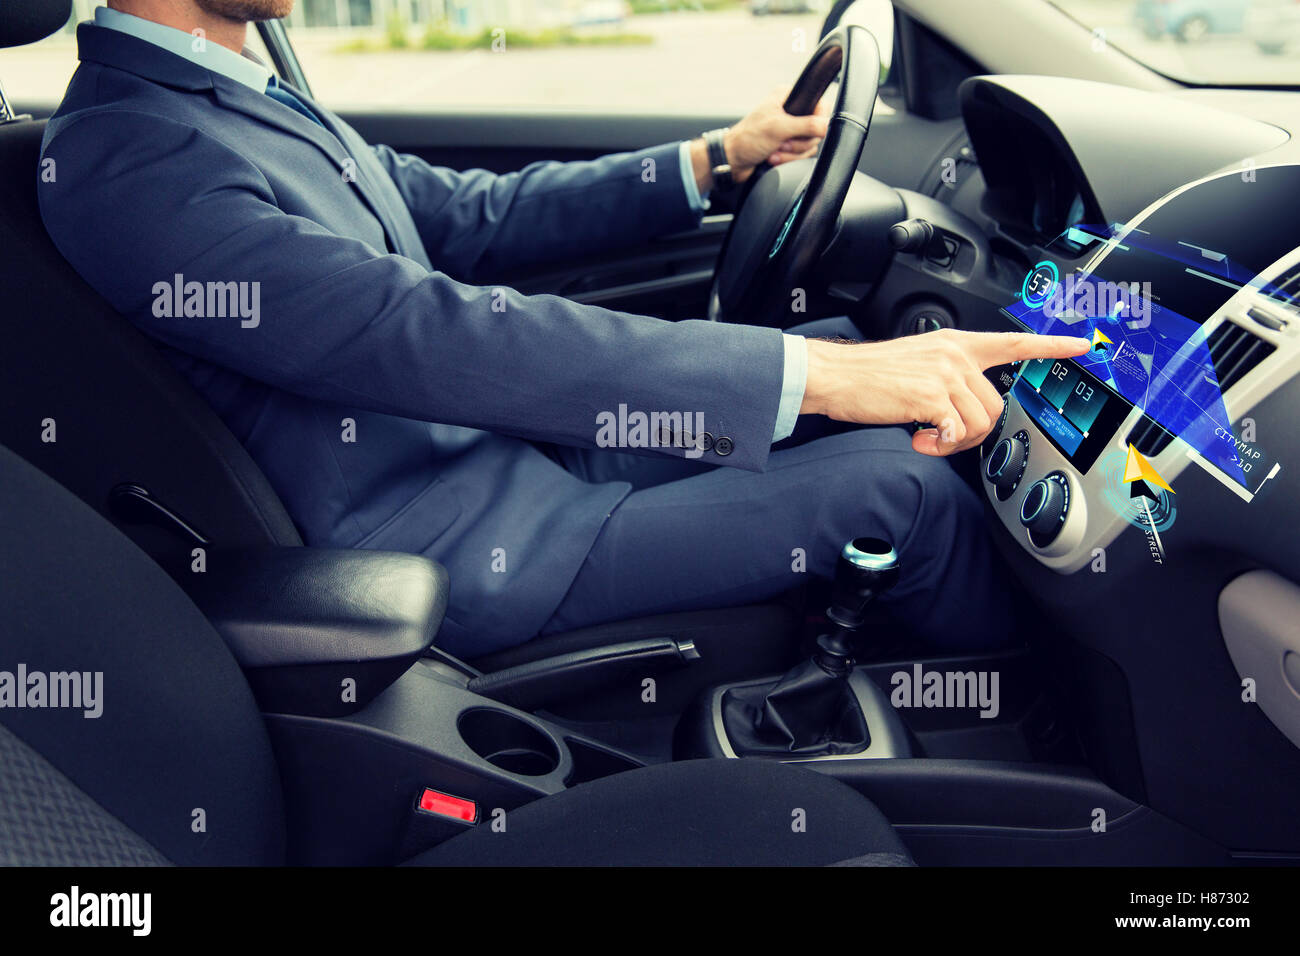 close up of man driving car with navigation - Stock Image